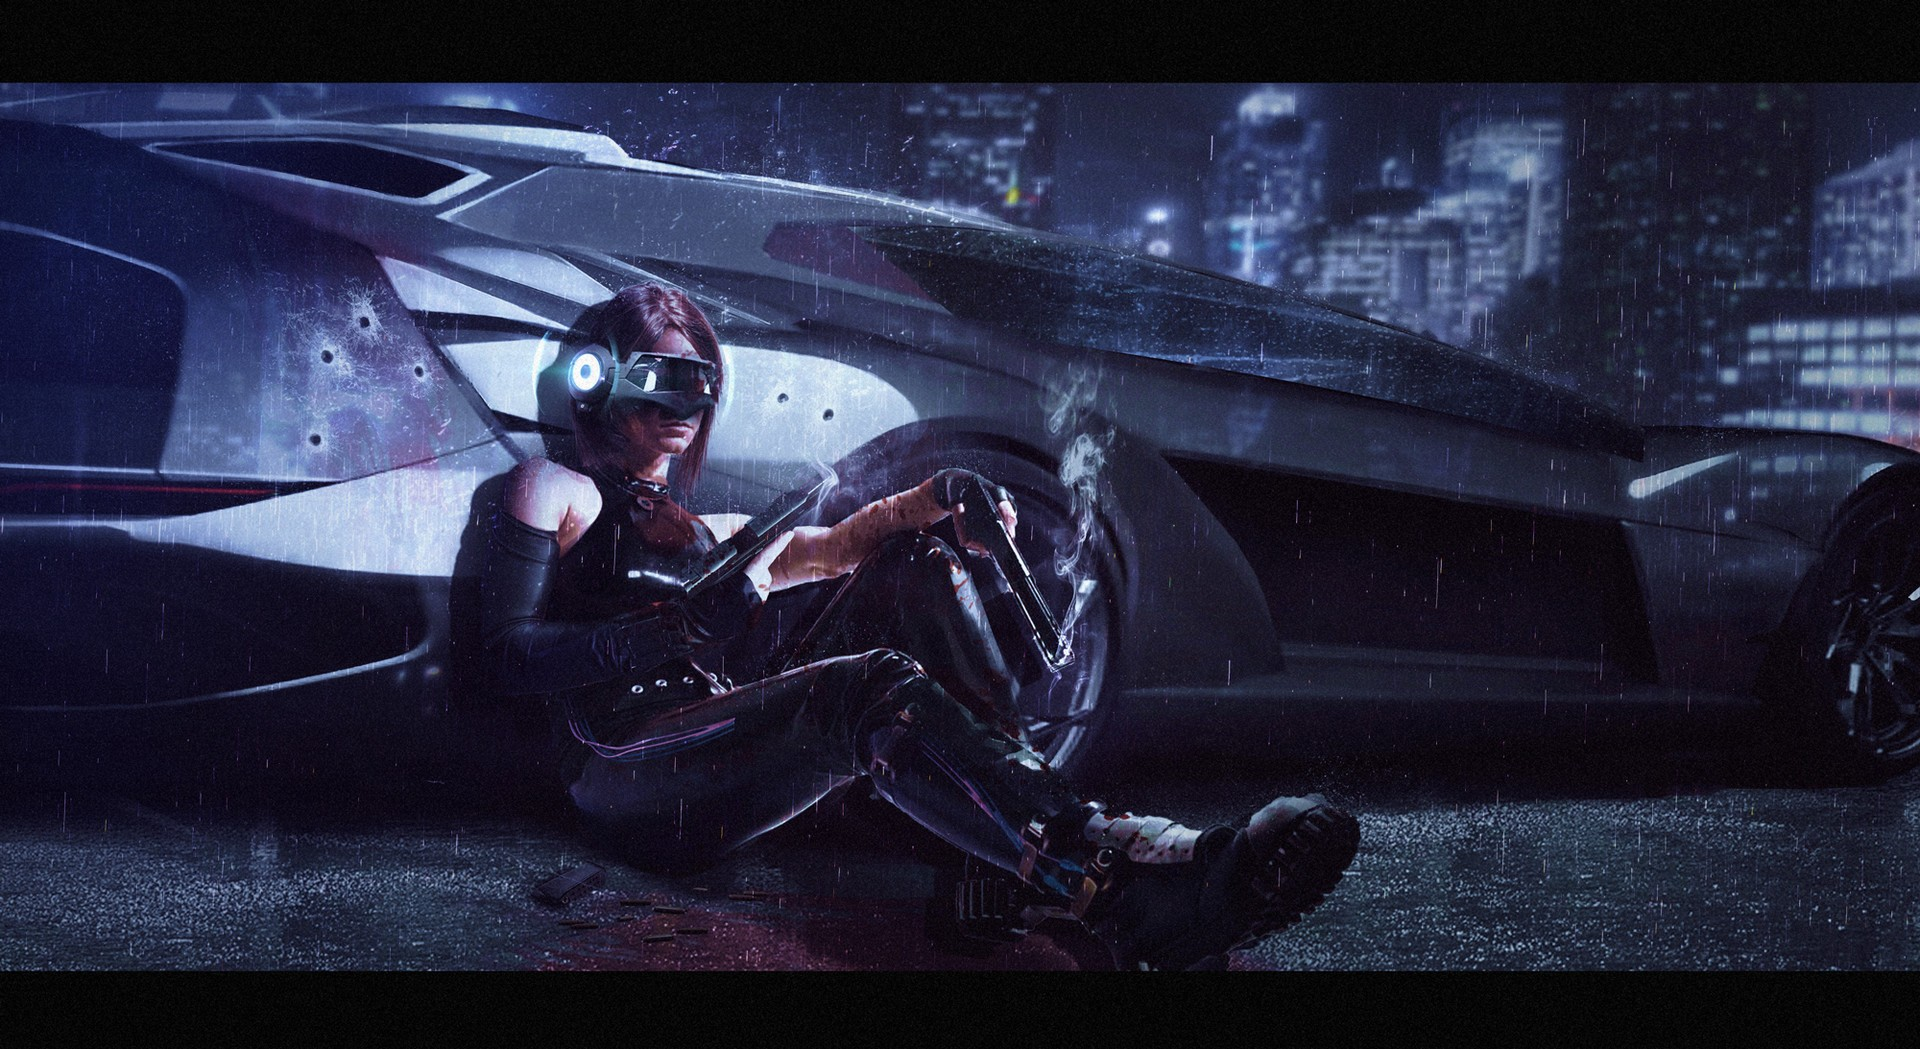 Super Car 5760x1080 Wallpaper Artwork Concept Art Women Gun Weapon Women With Guns